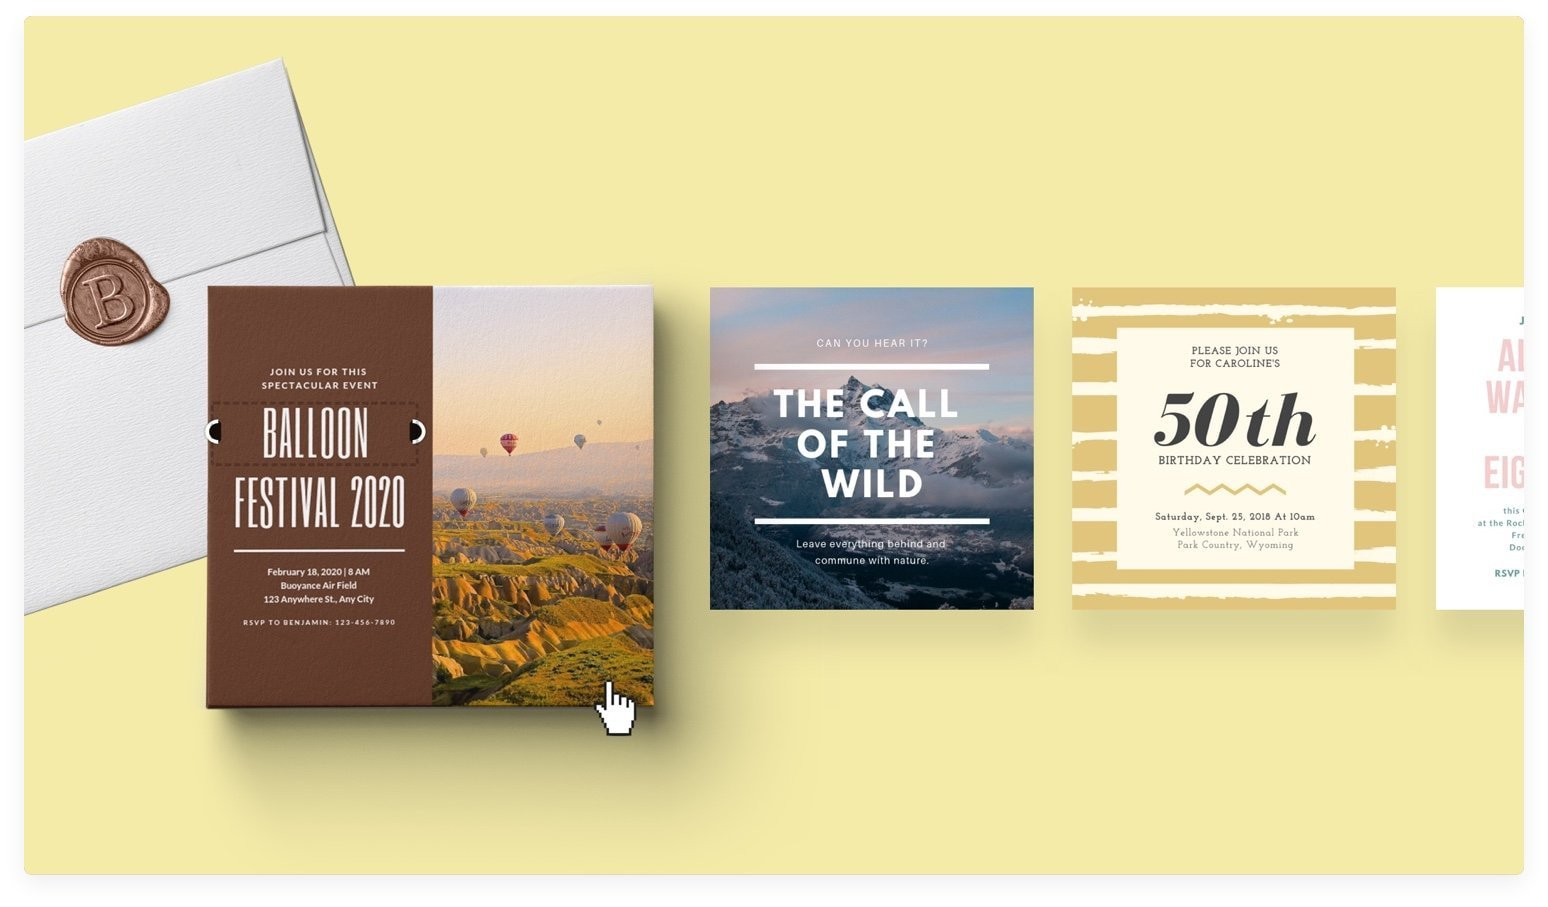 Invitation Maker: Design Your Own Custom Invitation Cards - Canva